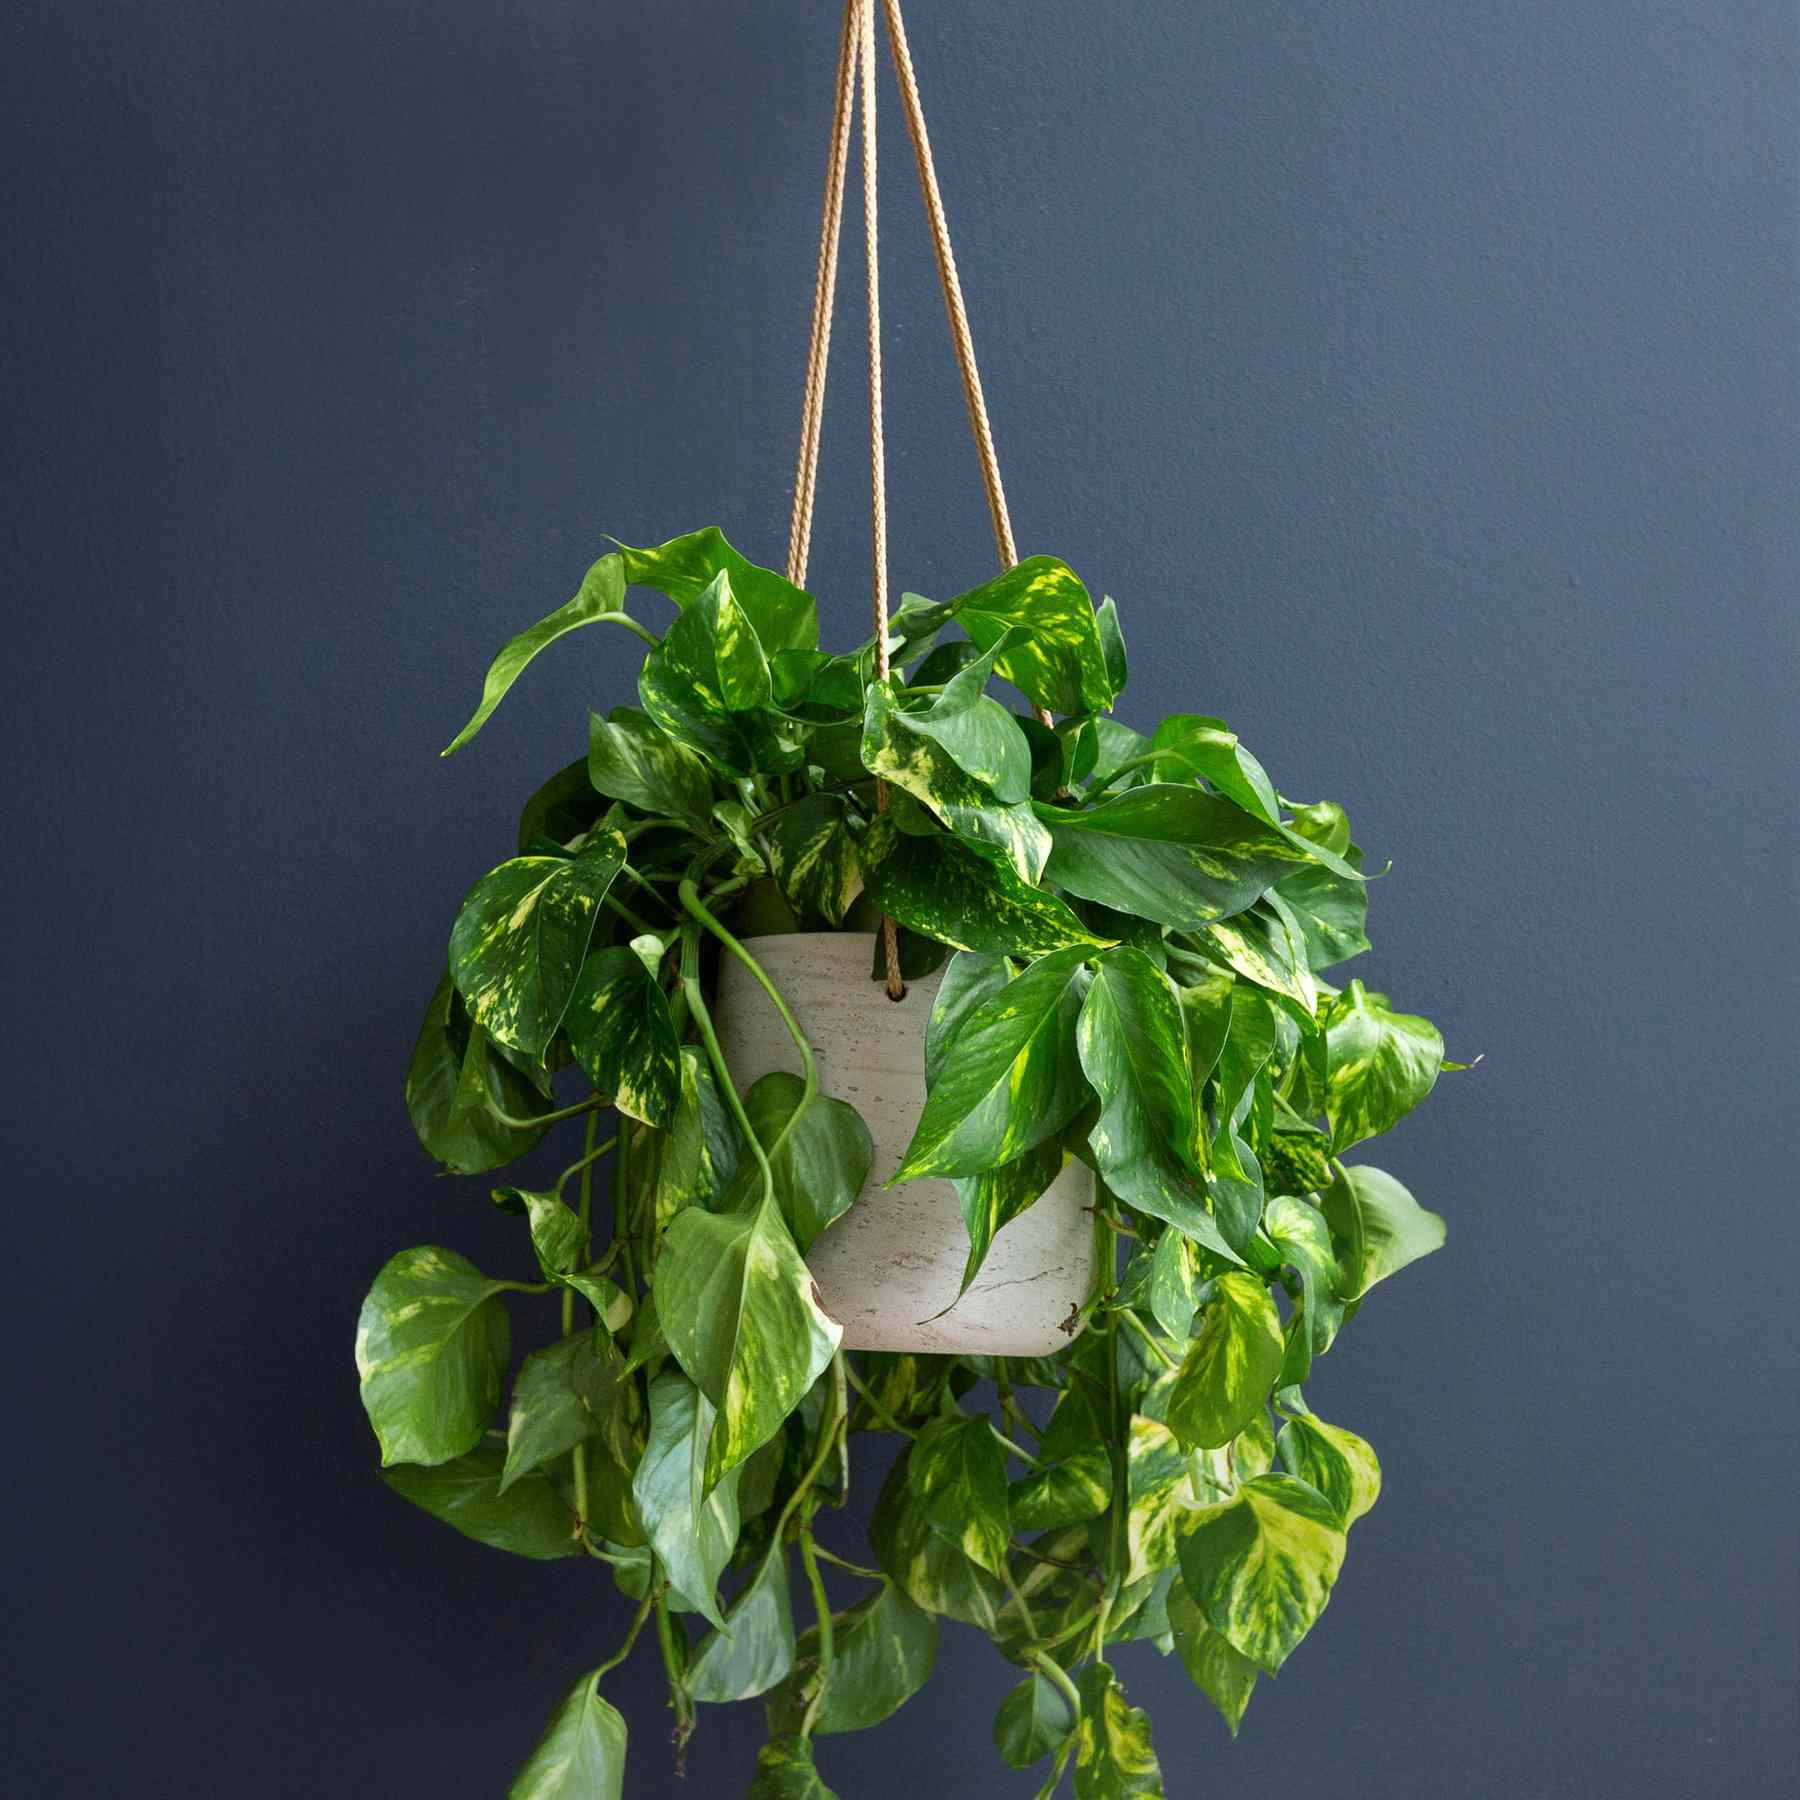 Golden pothos in a hanging planter against a blue wall